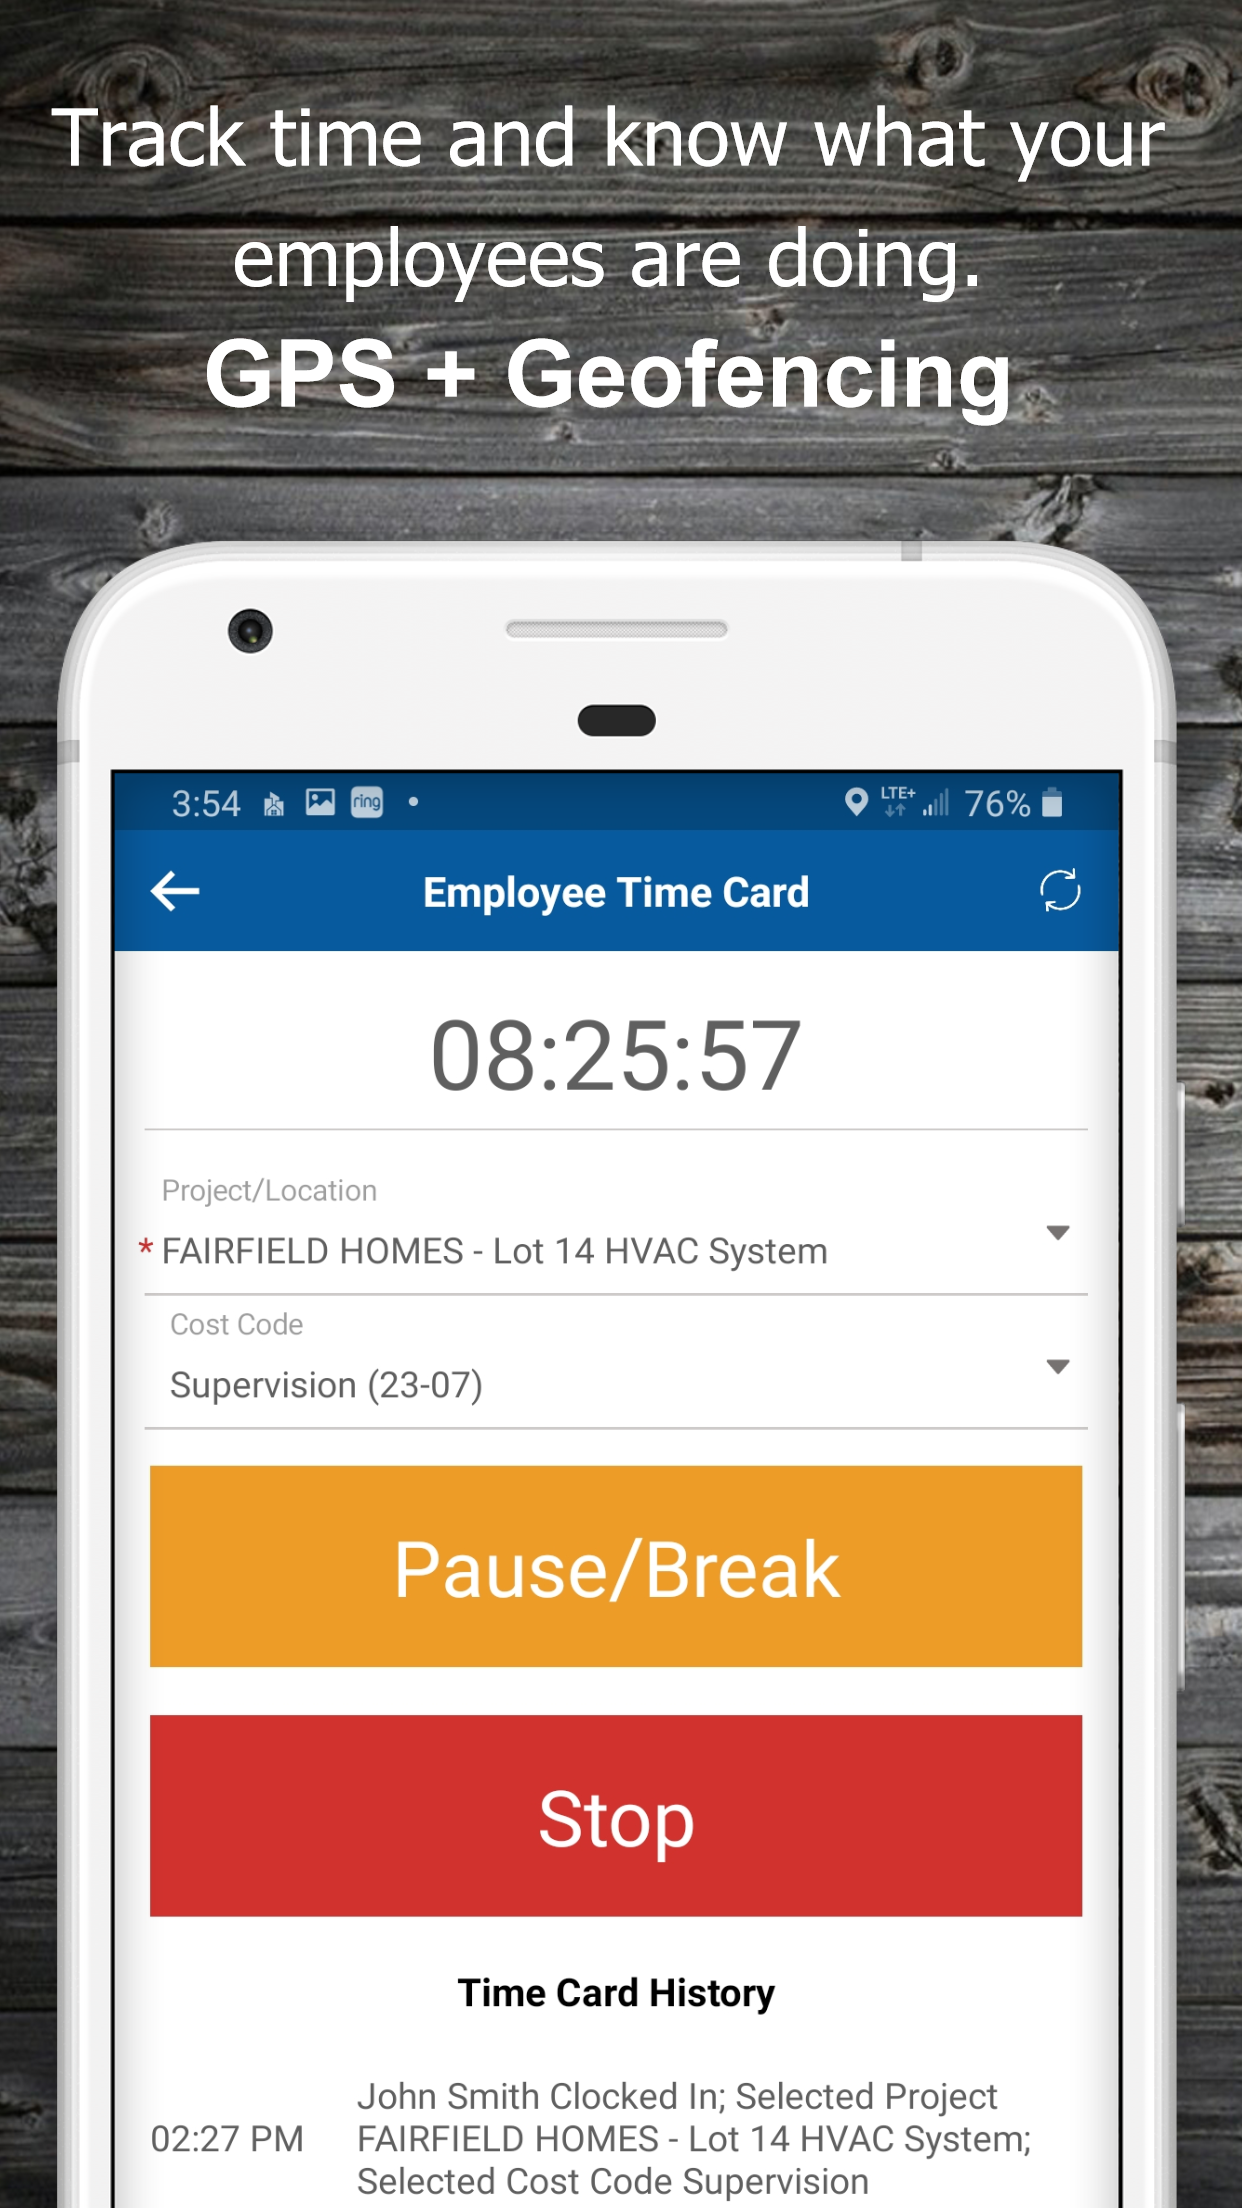 Our Timecard feature is worth the price along.  With GPS and Geofencing, advanced features have never been so easy to use and so affordable.